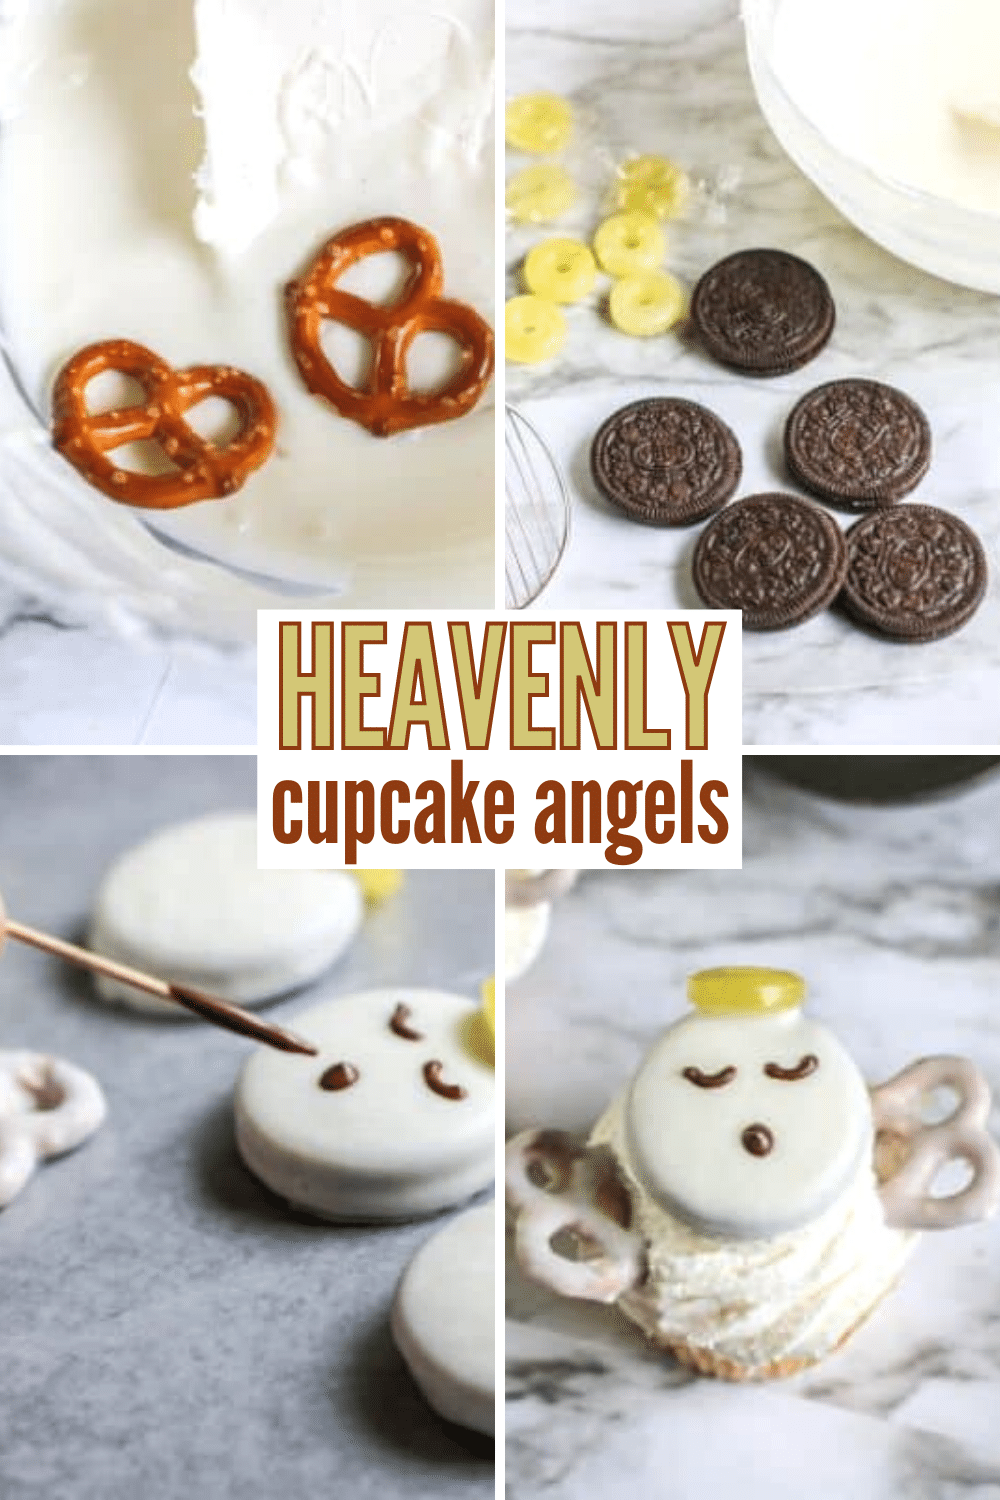 These heavenly cupcake angels only take a few simple ingredients to create and make a fun, but subtle addition to your dessert table. Ideal for any religious-based holiday or party. #clevercupcakes #funfood #angels #cupcakes via @wondermomwannab